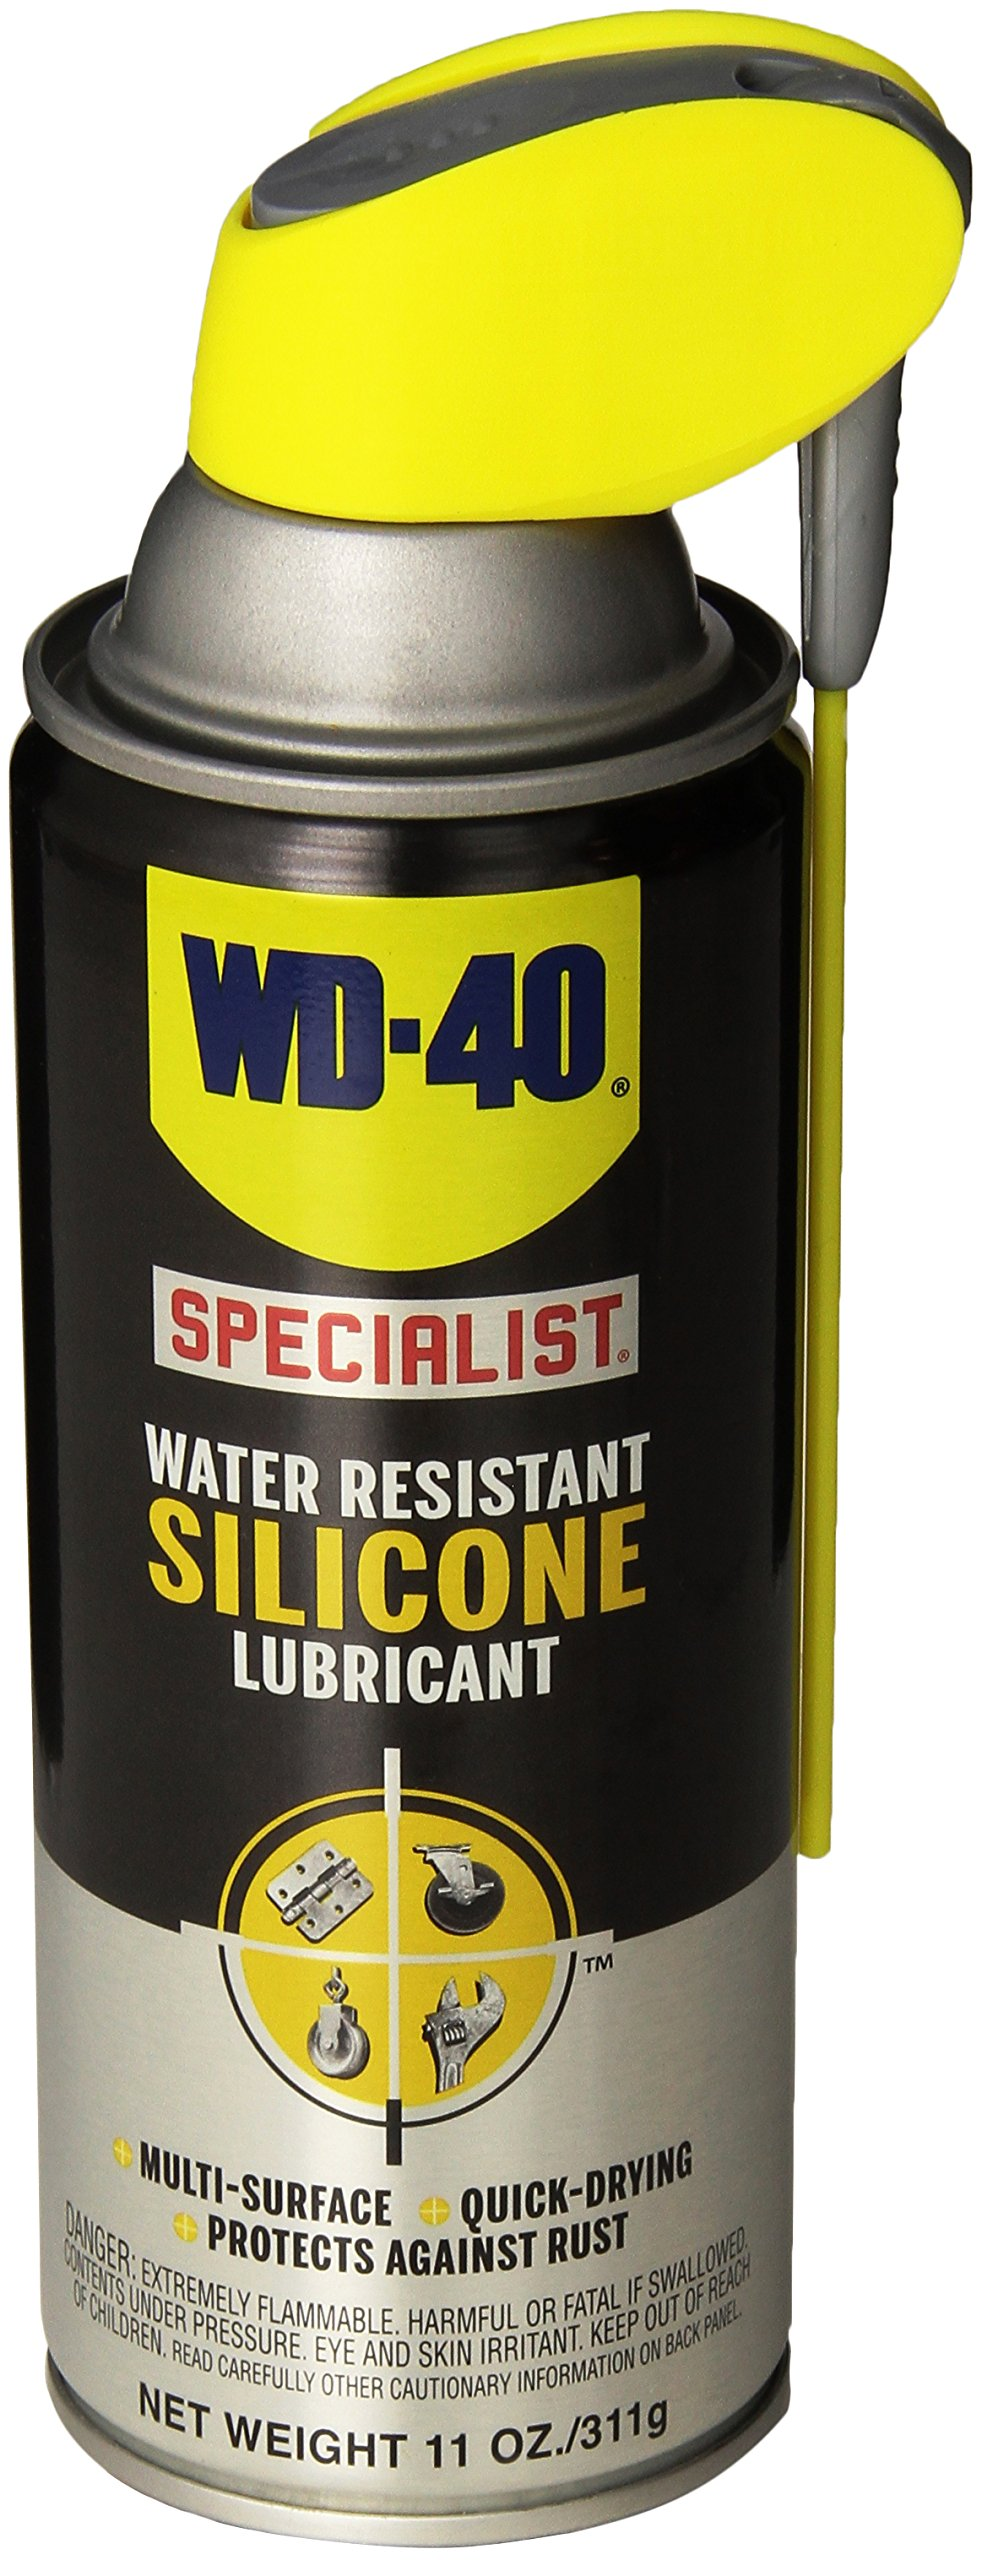 WD-40 Specialist Water Resistant Silicone Lubricant with SMART STRAW SPRAYS 2 WAYS 11 OZ [6-Pack] by WD-40